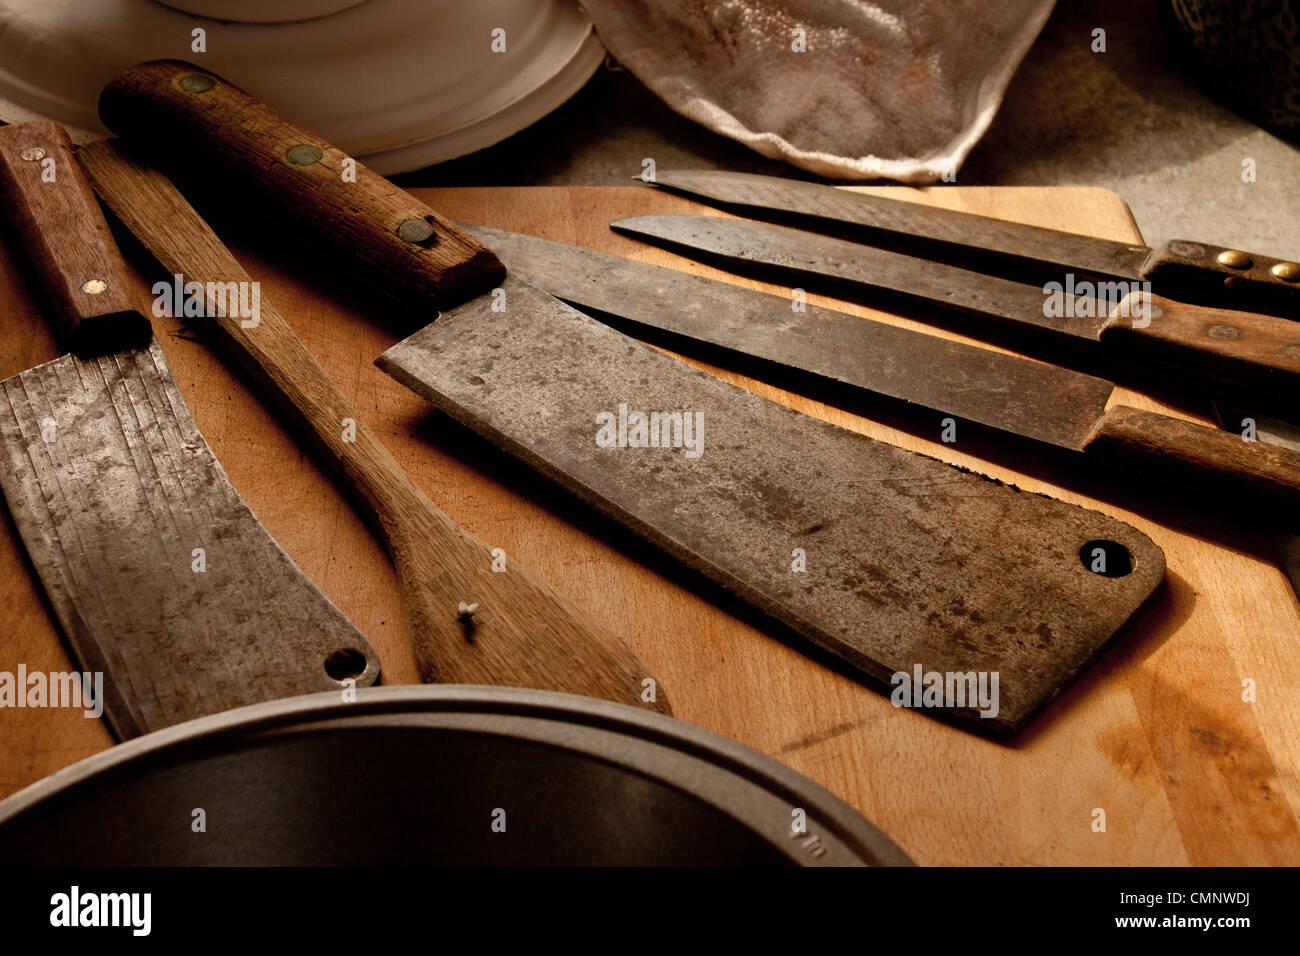 Antique butcher cleaver knifes on cutting board. - Stock Image